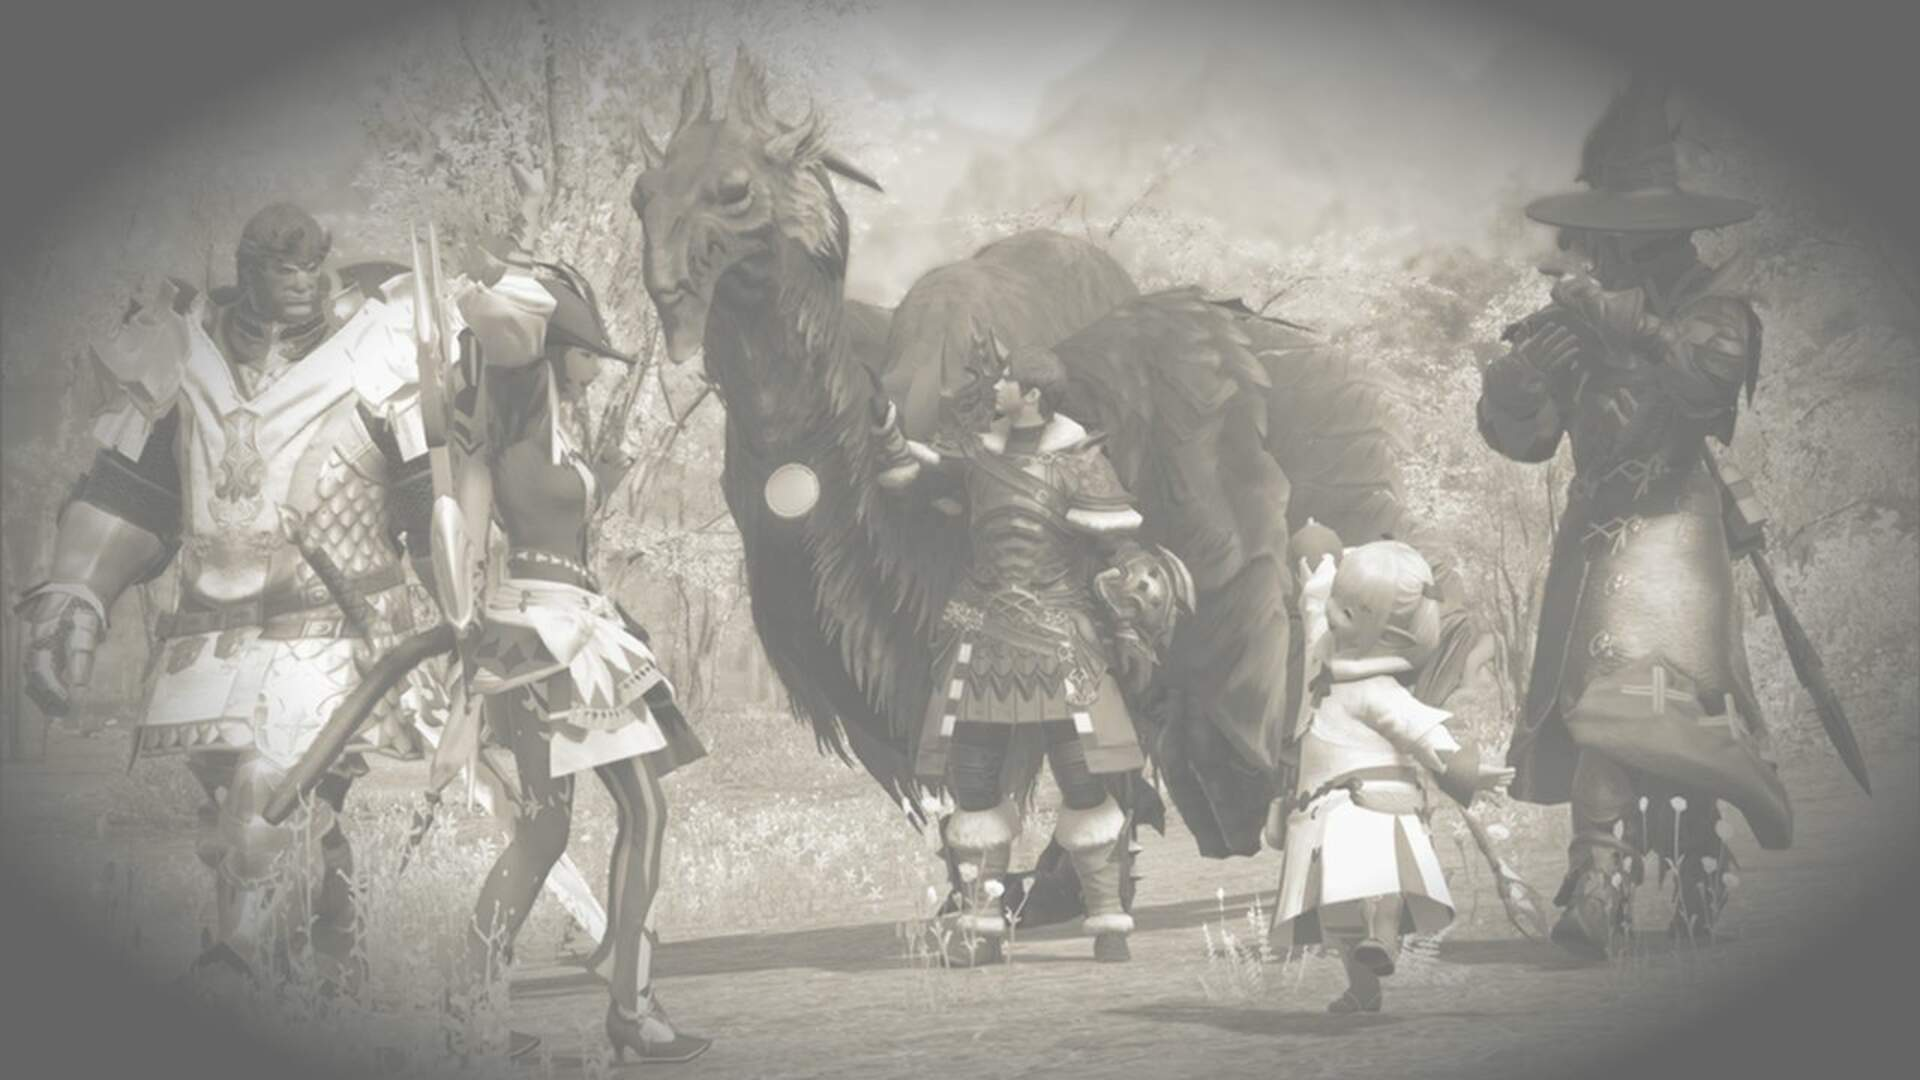 Final Fantasy 14: Shadowbringers Has a Quest That's Engineered to Destroy Dog Owners